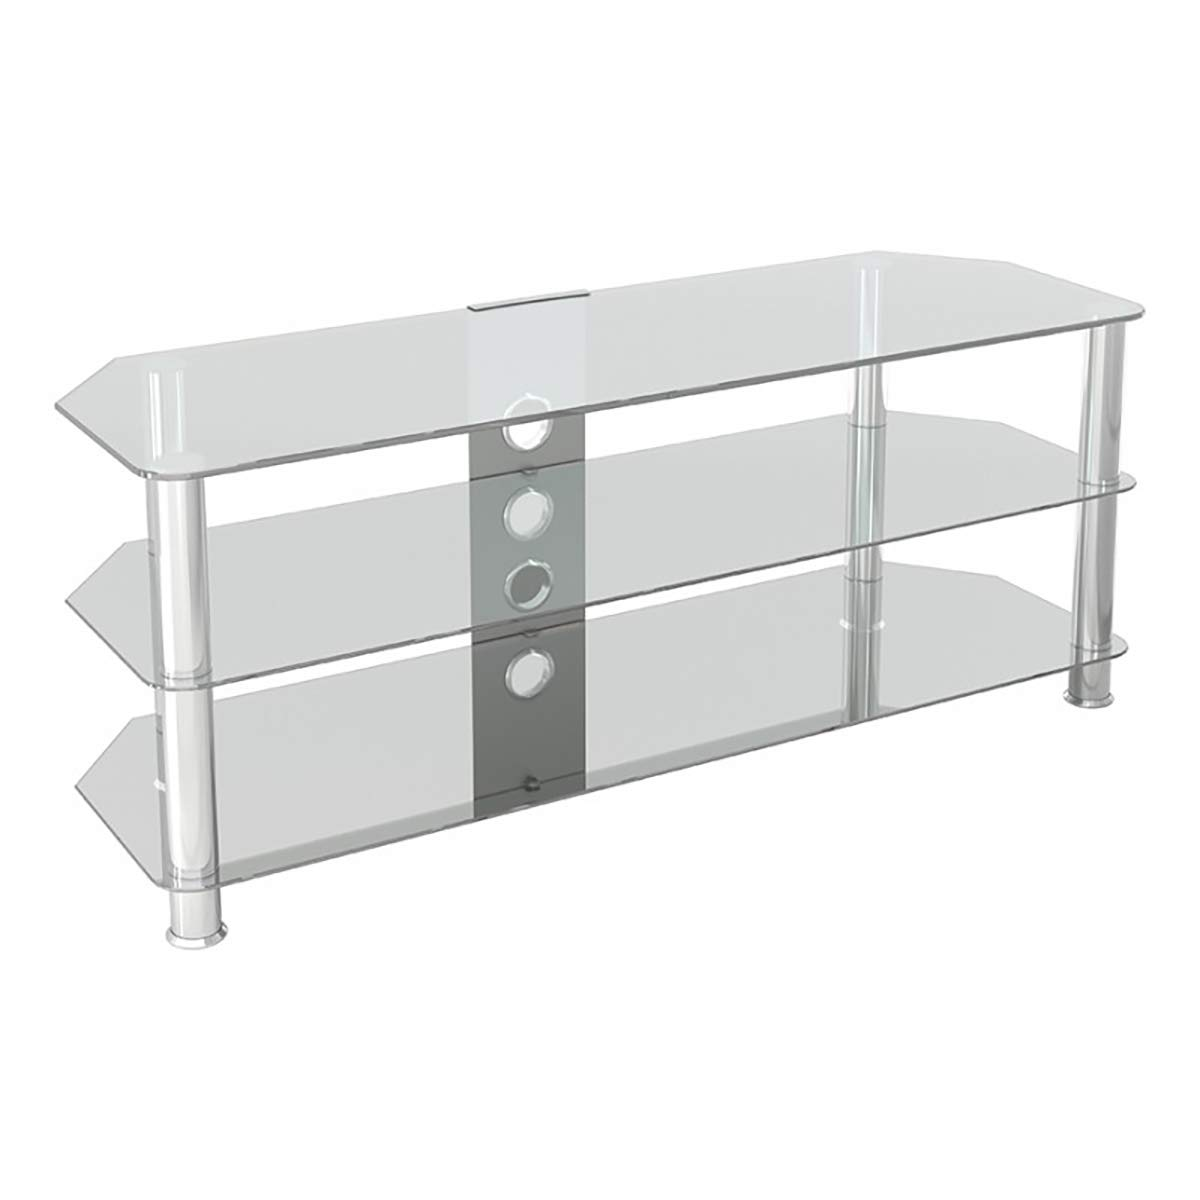 AVF SDC1250CMCC-A Classic – Corner Glass TV Stand up to 60 with Cable Management, Clear Glass, Chrome Legs